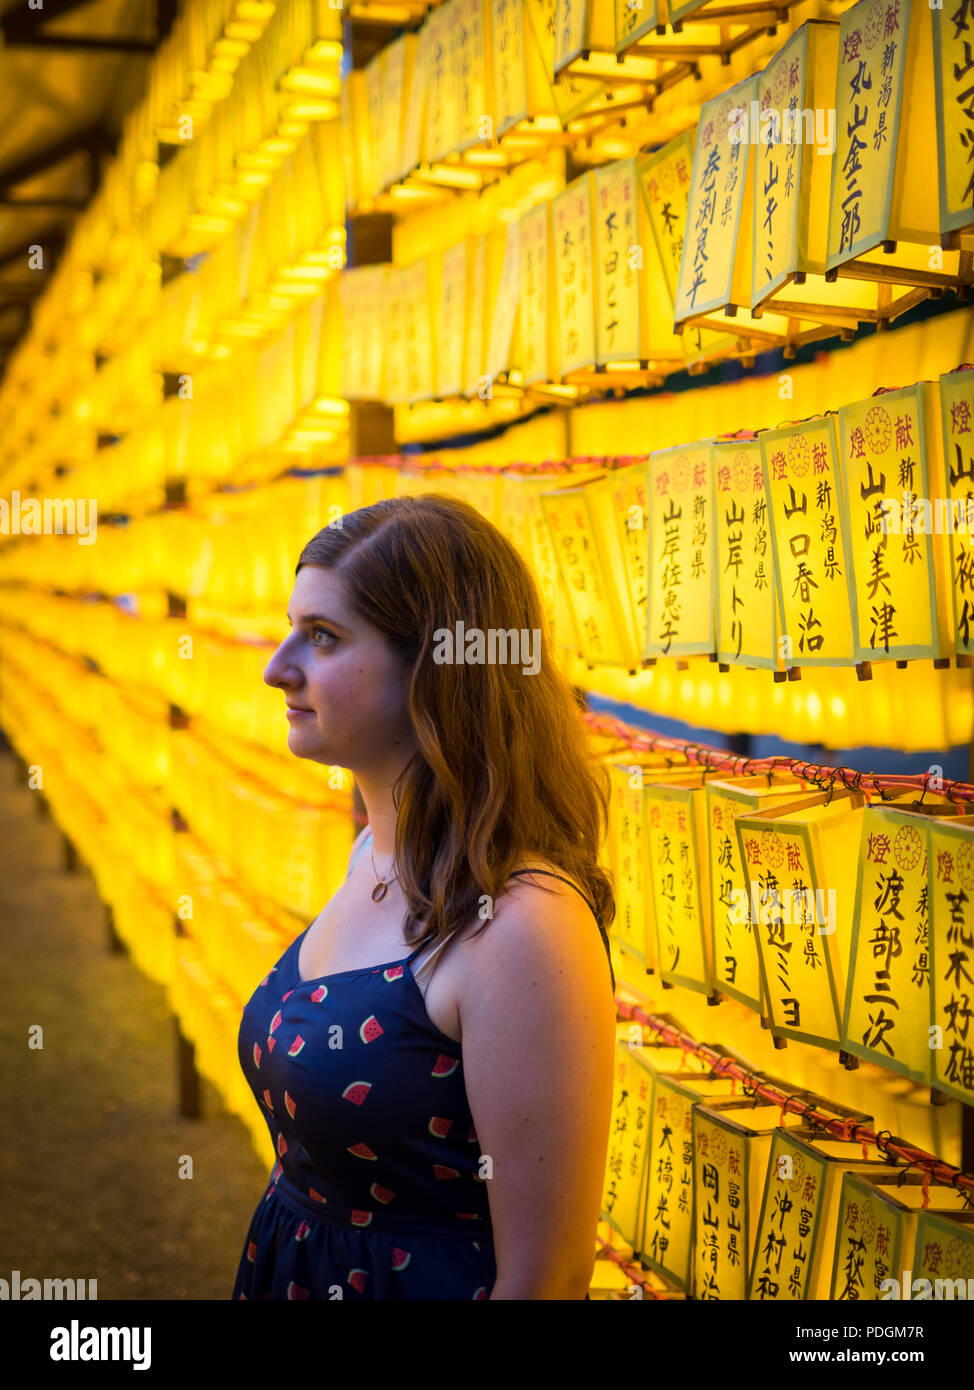 A tourist amongst lanterns of the 2018 Mitama Matsuri (Mitama Festival), a famous Japanese Obon (Bon) summer festival. Yasukuni Shrine, Tokyo, Japan. - Stock Image